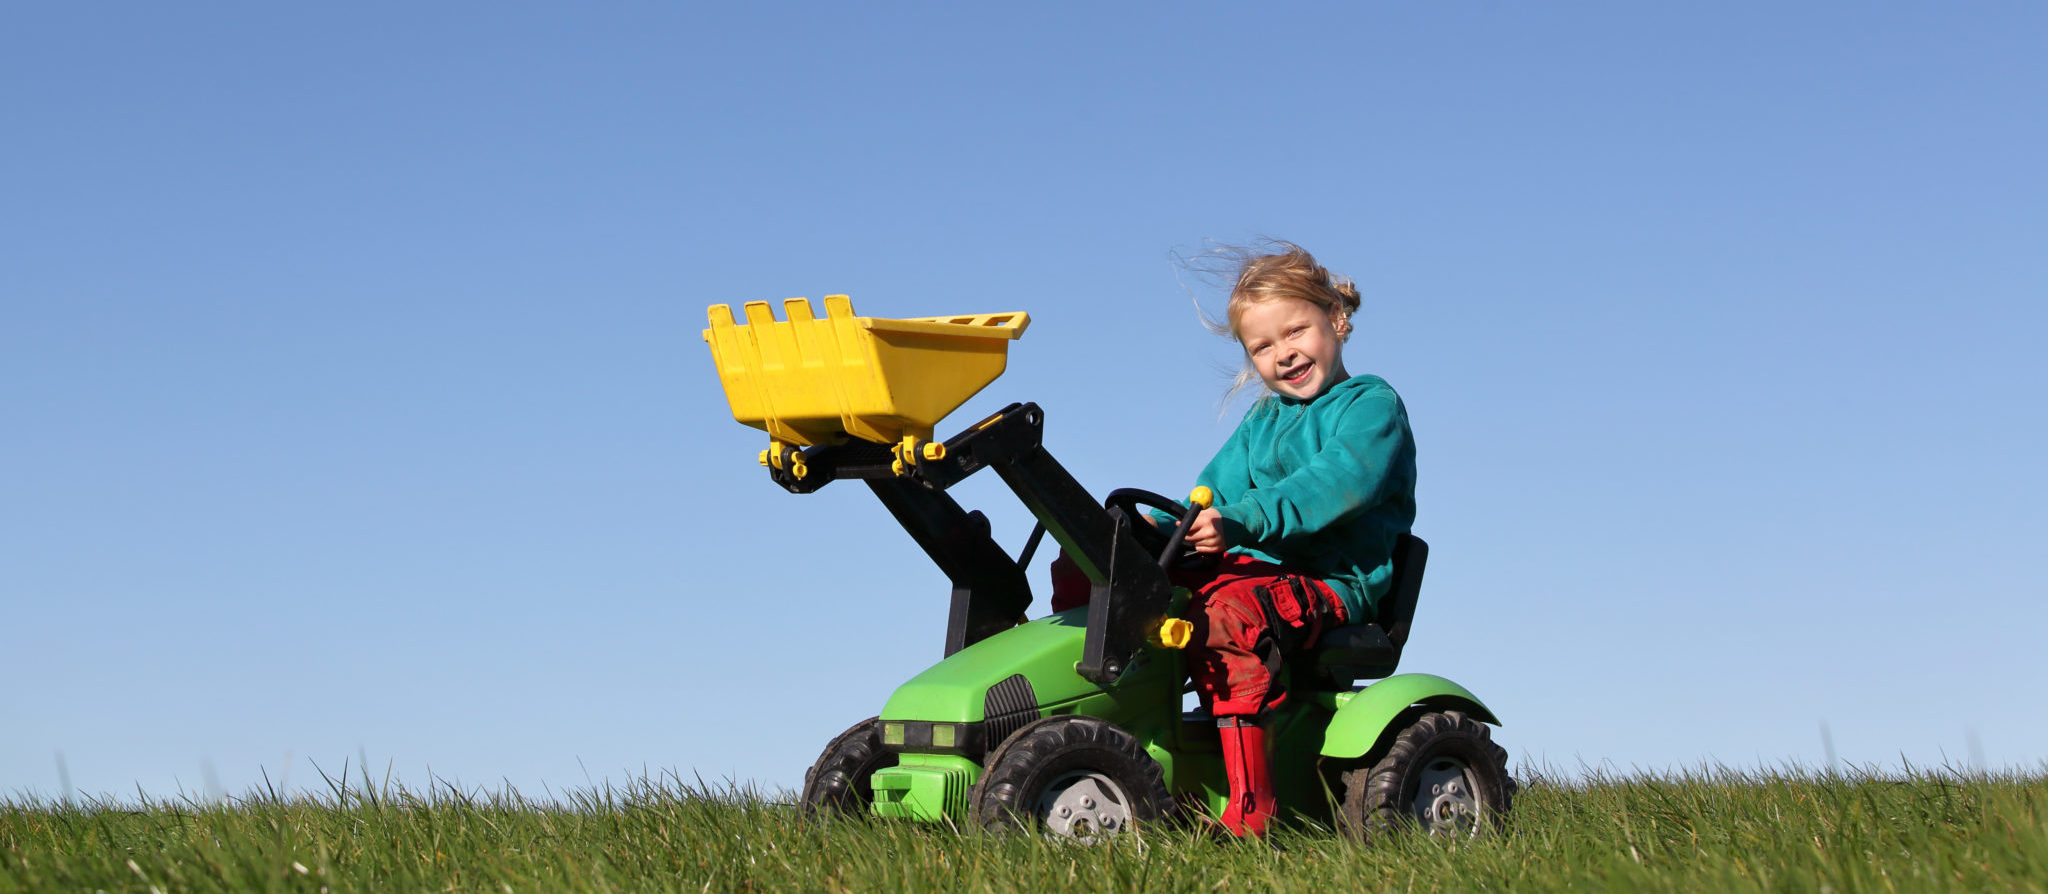 Why settle for a truck with one seat when you could be out in the field with a friend or sibling?